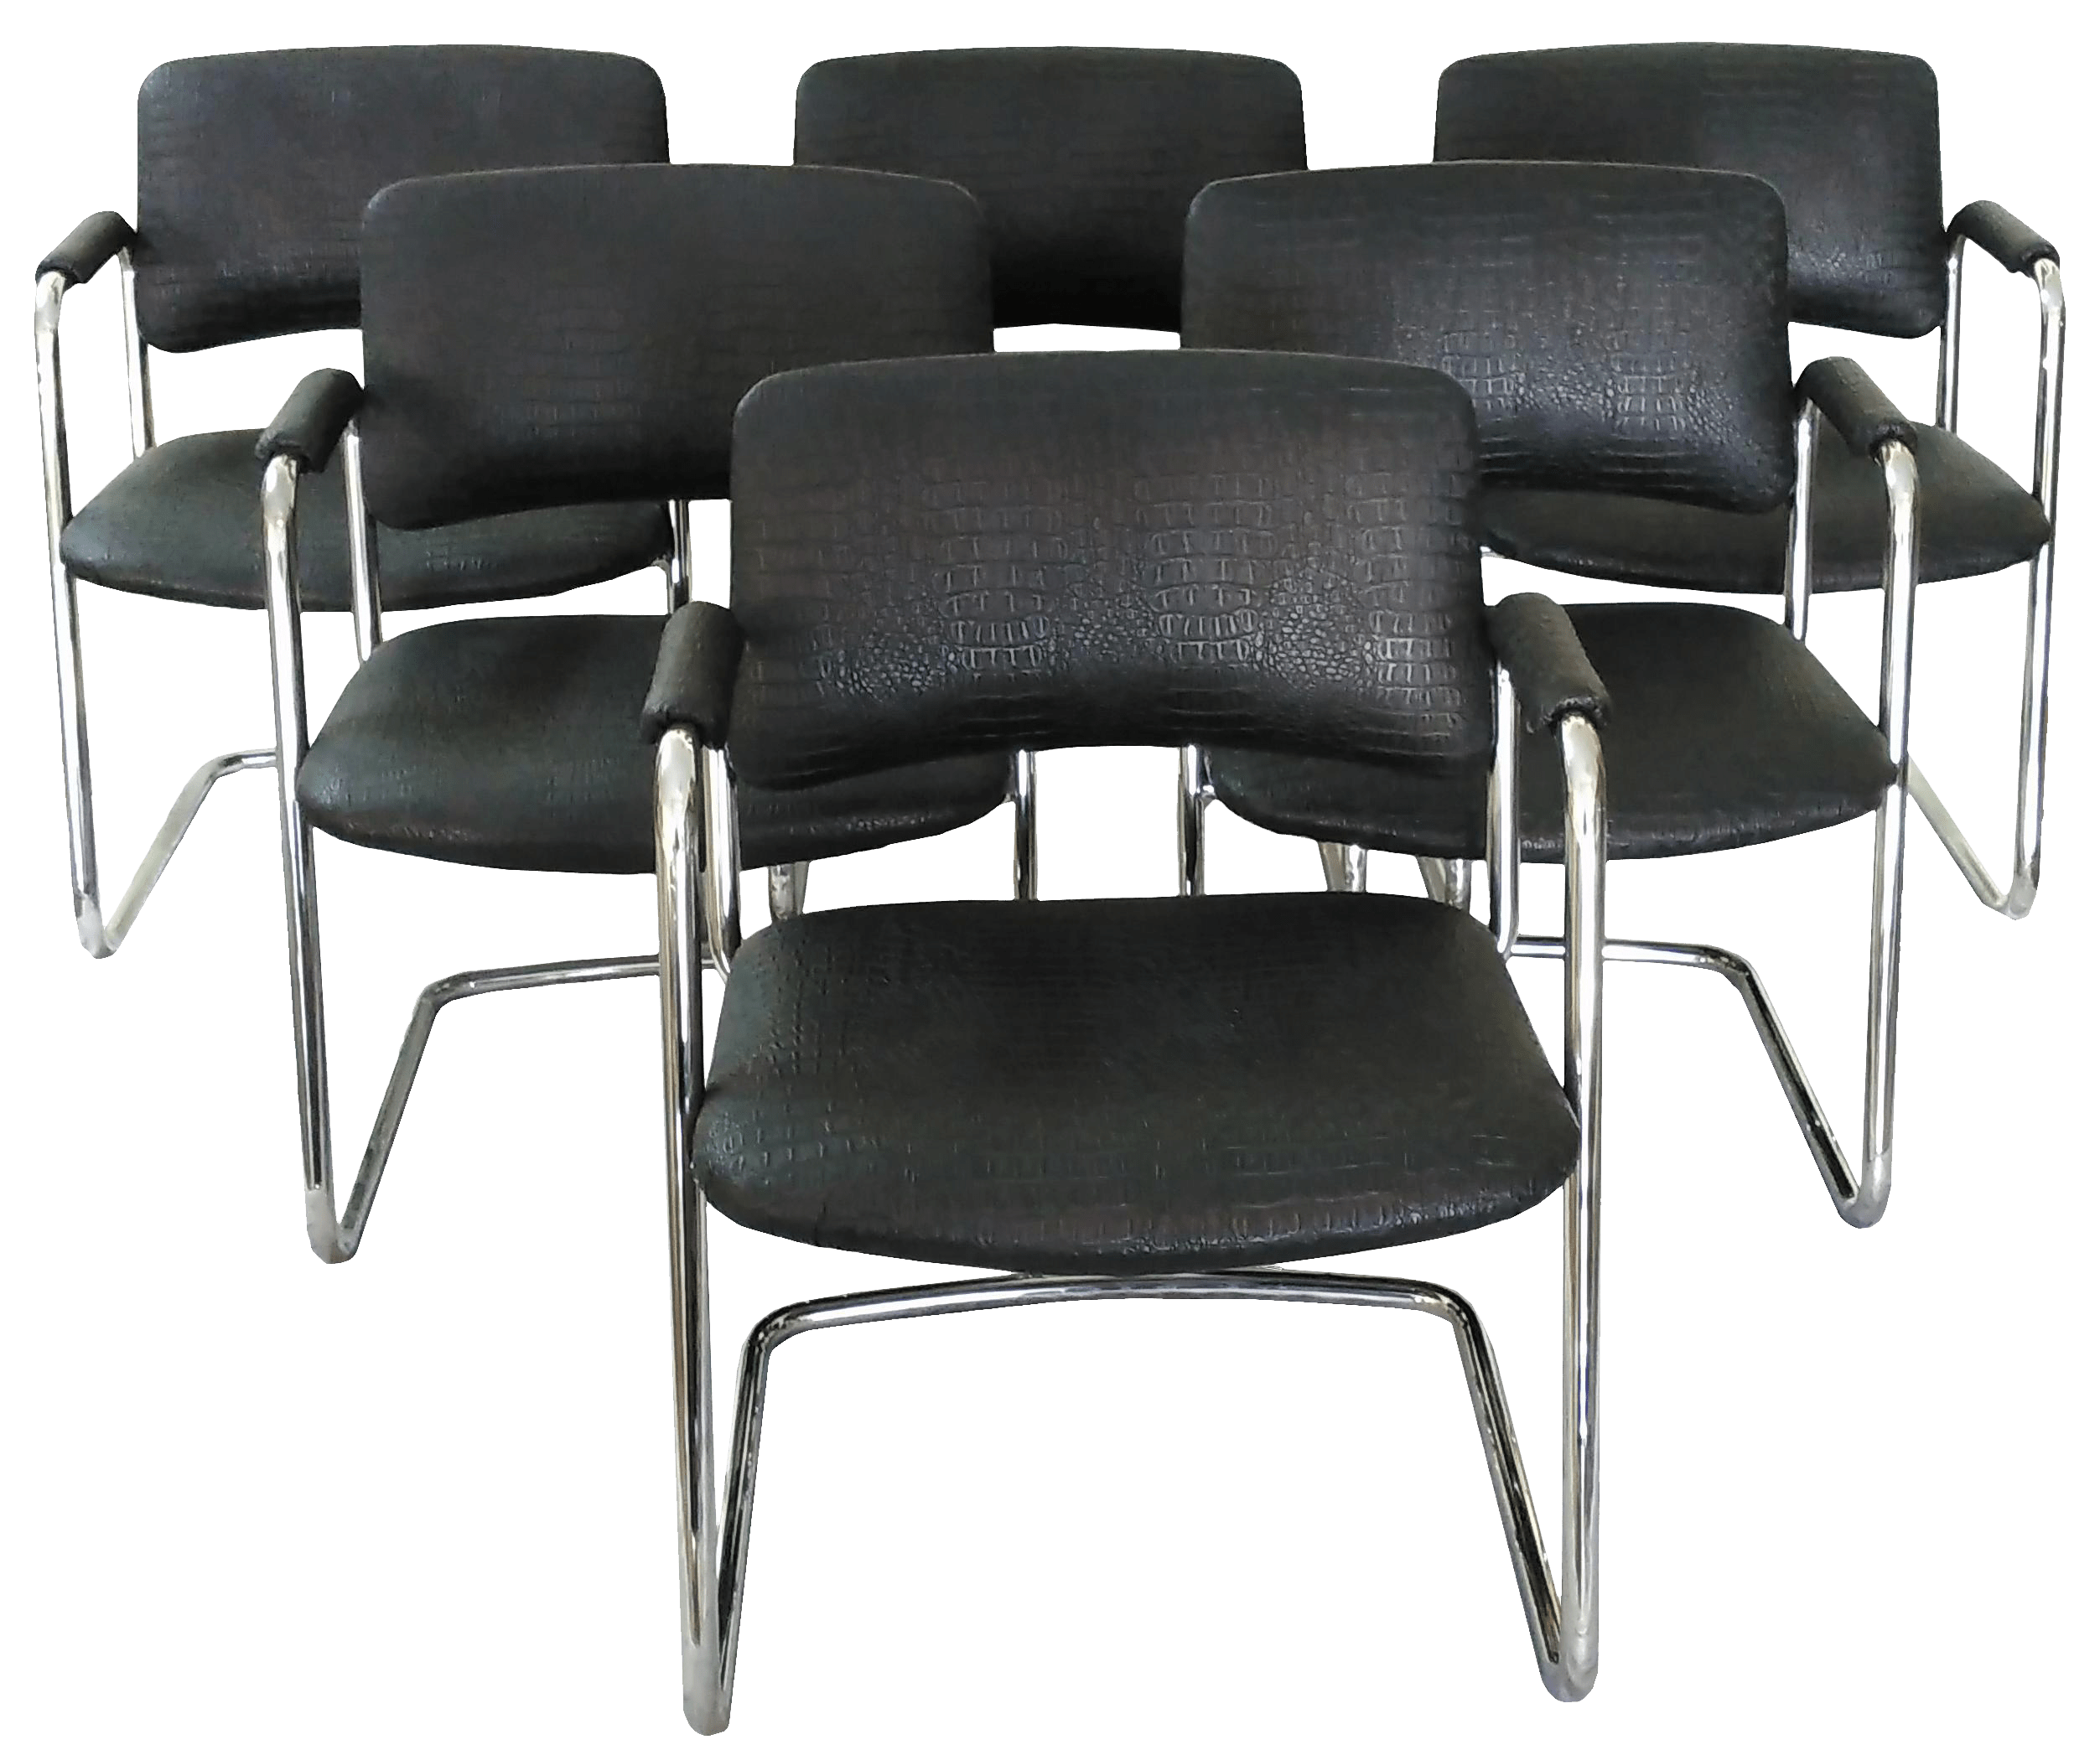 steelcase vintage chair recycled milk jug chairs black cantilever set of 6